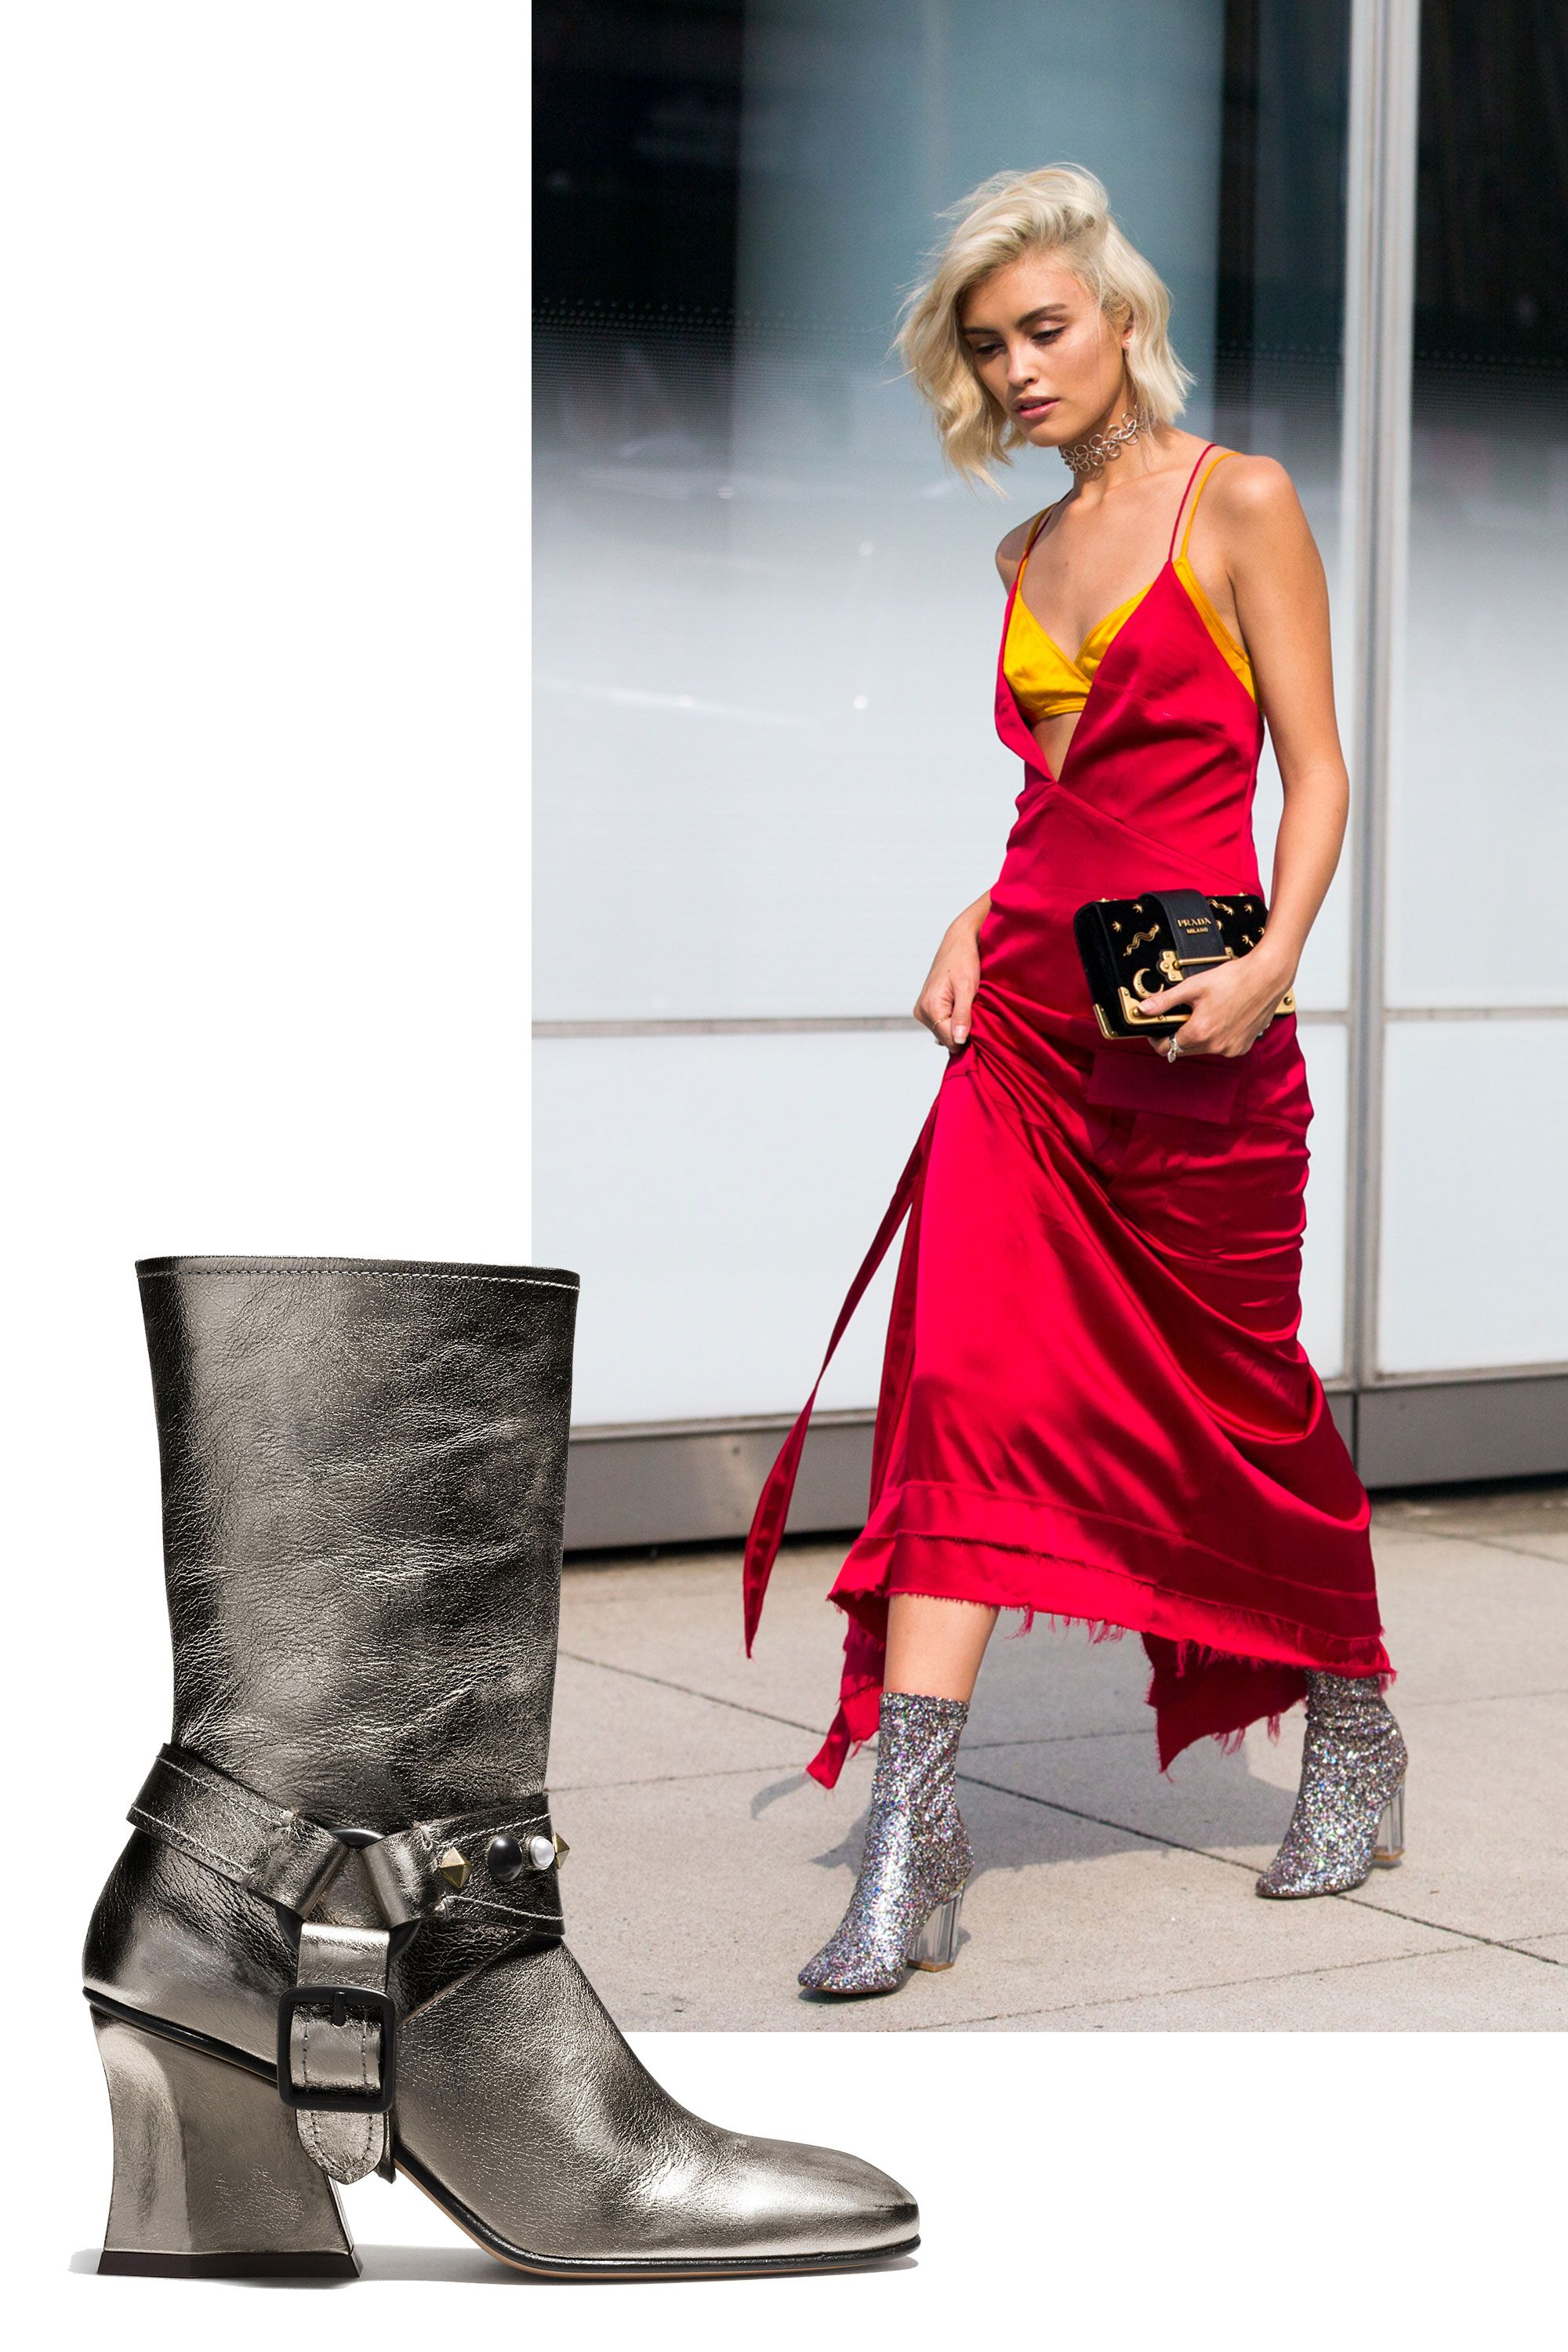 """<p>Go for contrasting textures for that element of surprise—pairing an ethereal silk slip dress with silver metallic boots is the coolest '90s revival trend ever. </p><p><br> </p><p><em data-redactor-tag=""""em"""">Coach 1941 Harness Boot, $595, </em><a rel=""""noskim"""" href=""""http://www.coach.com/coach-designer-boots-harness-boot/Q8918.html?CID=D_B_HBZ_11834"""" target=""""_blank""""><em data-redactor-tag=""""em"""">coach.com</em></a></p>"""